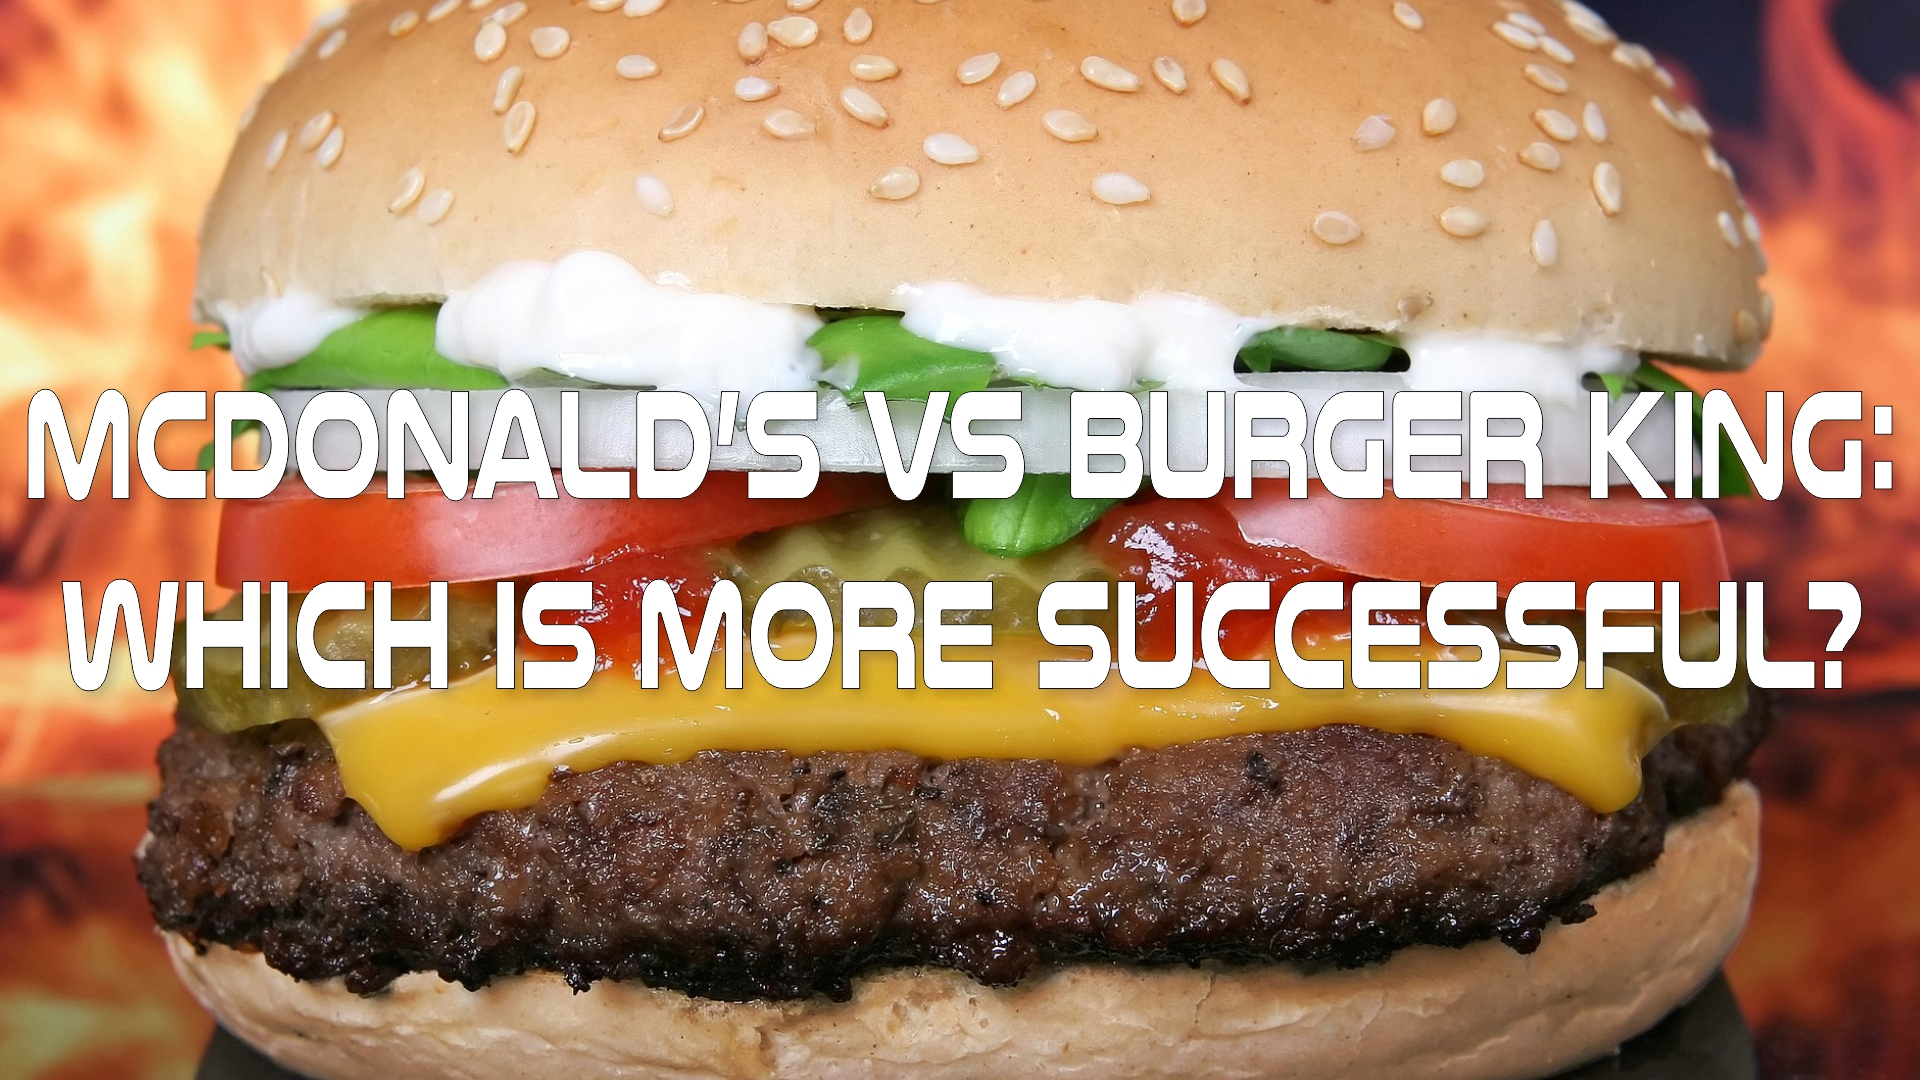 McDonald's VS Burger King: which is more successful?